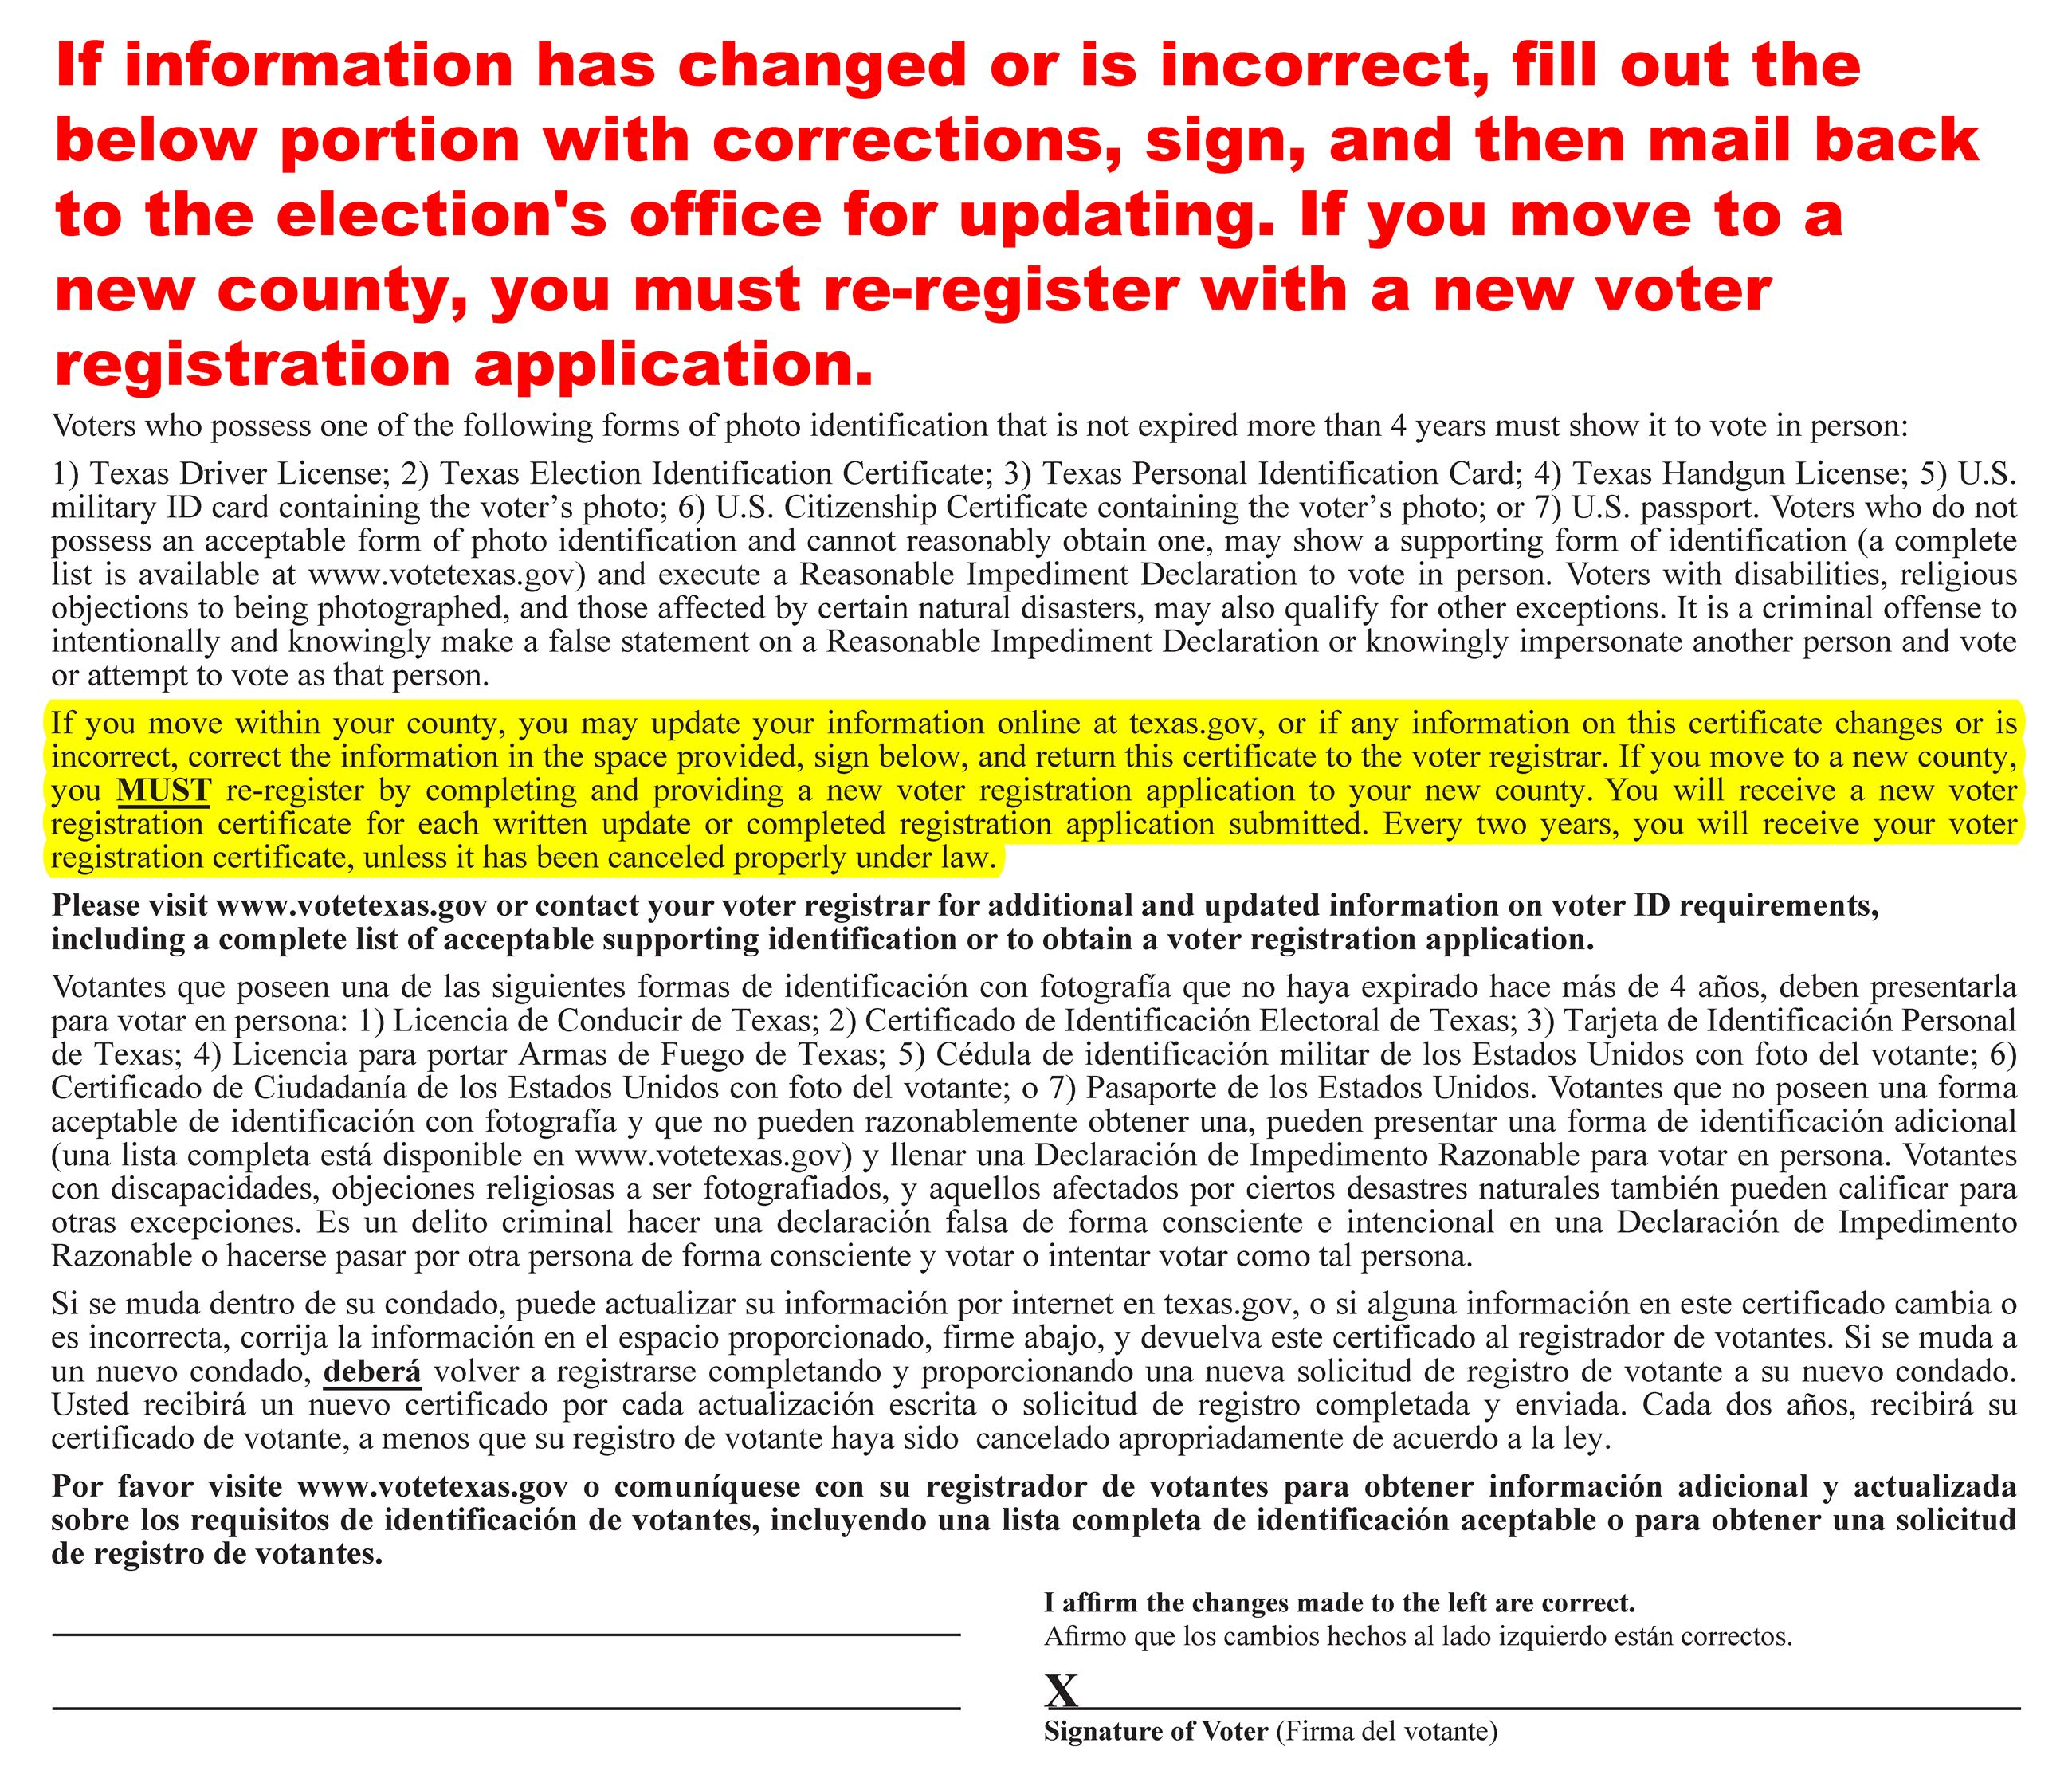 2020 Voter card Change Information